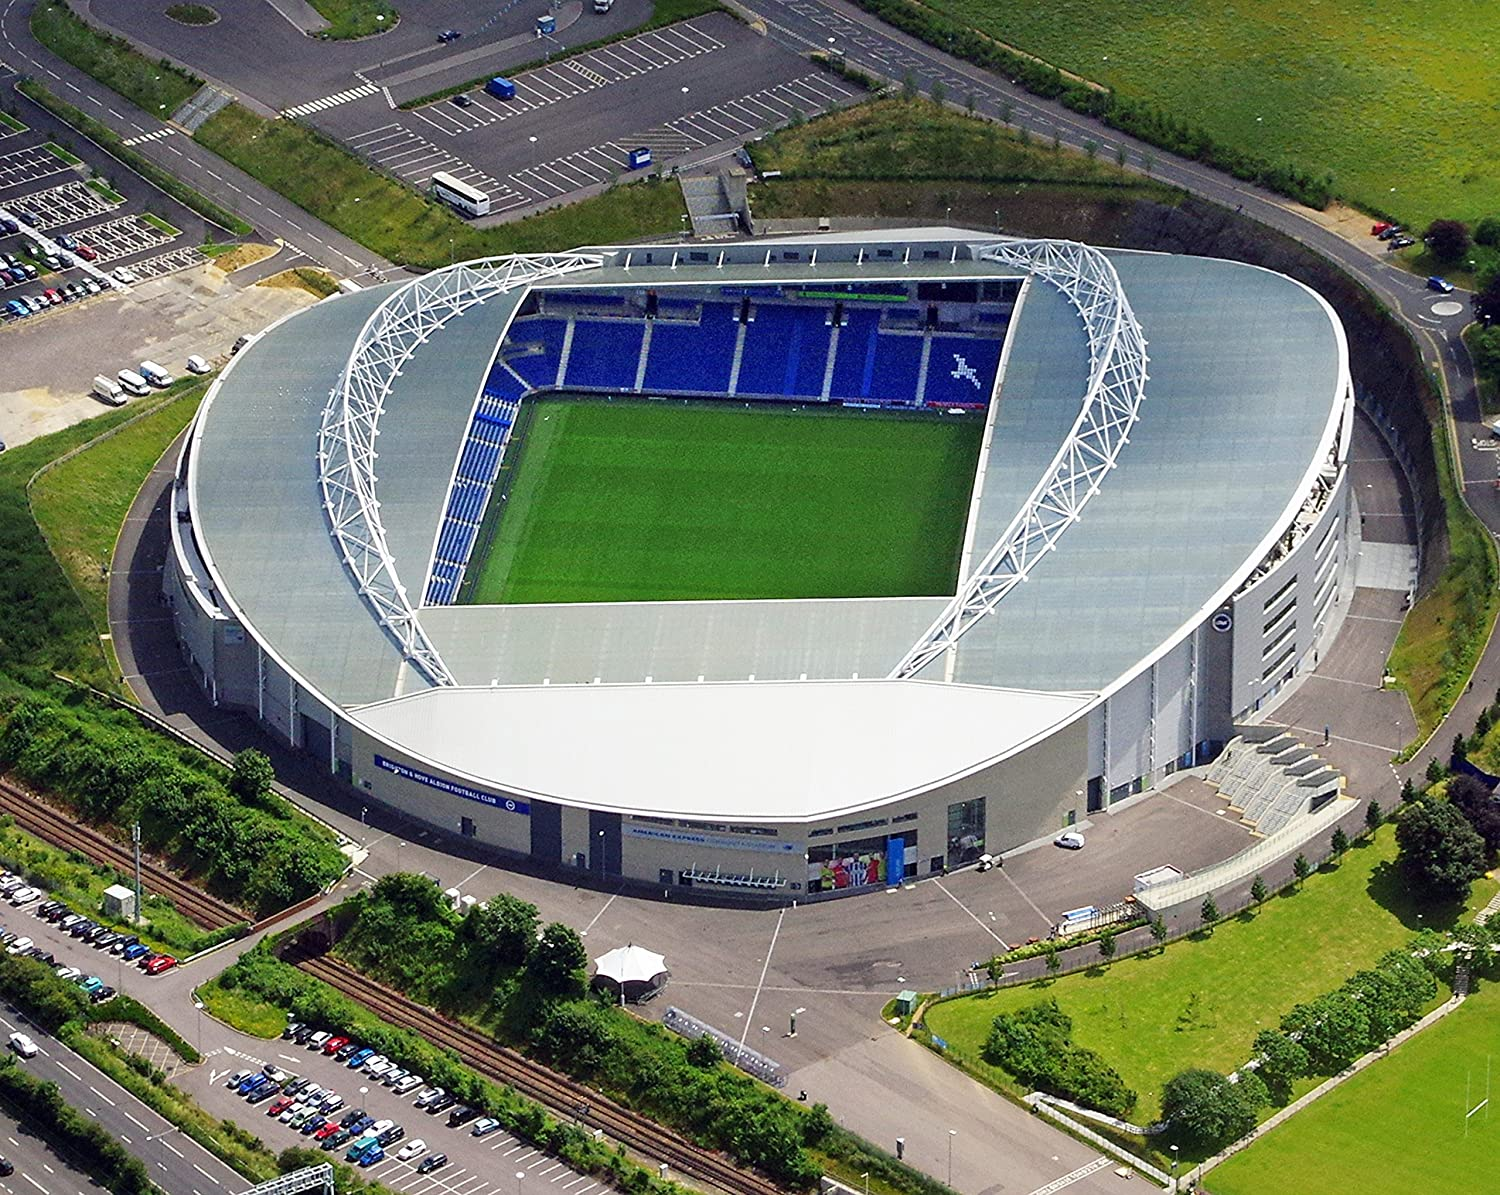 Giving for Sport at the Amex Stadium